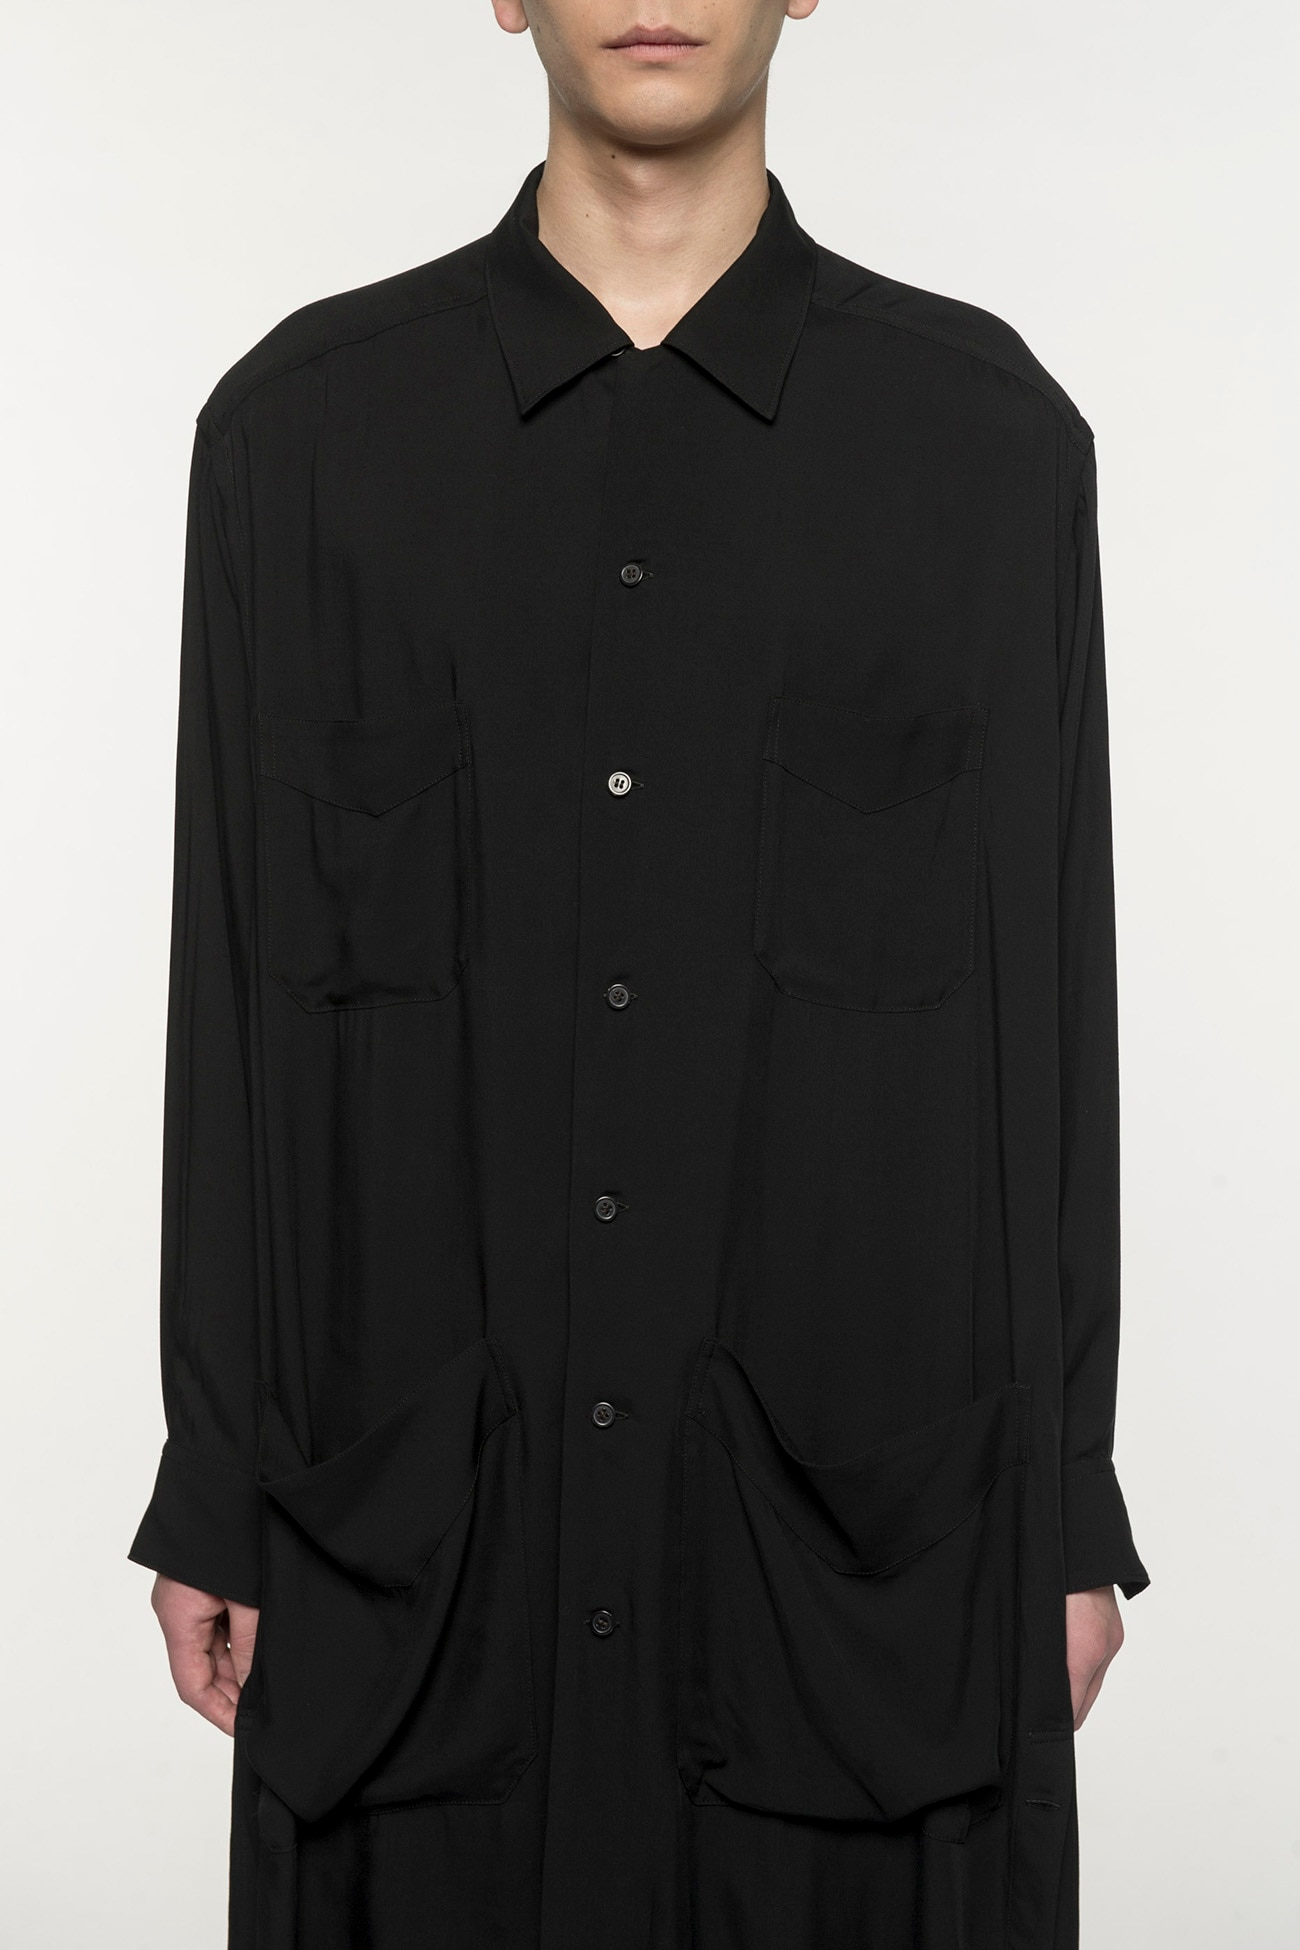 60s Ry / Span Twill Washer 4 Pocket Open Long Shirt